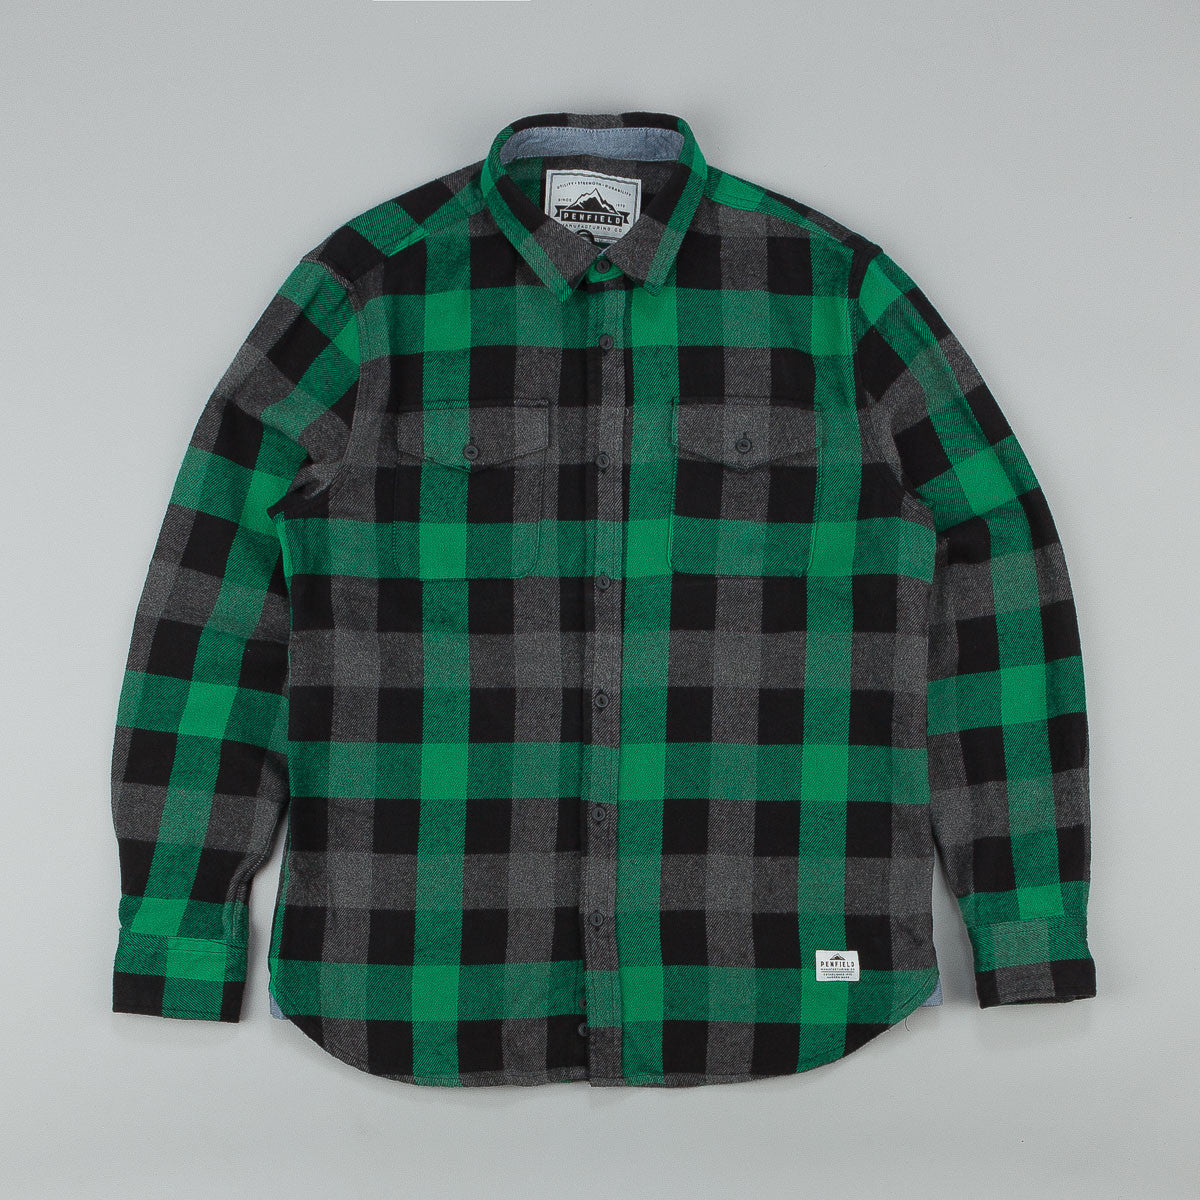 Penfield Chatham Check Long Sleeve Shirt